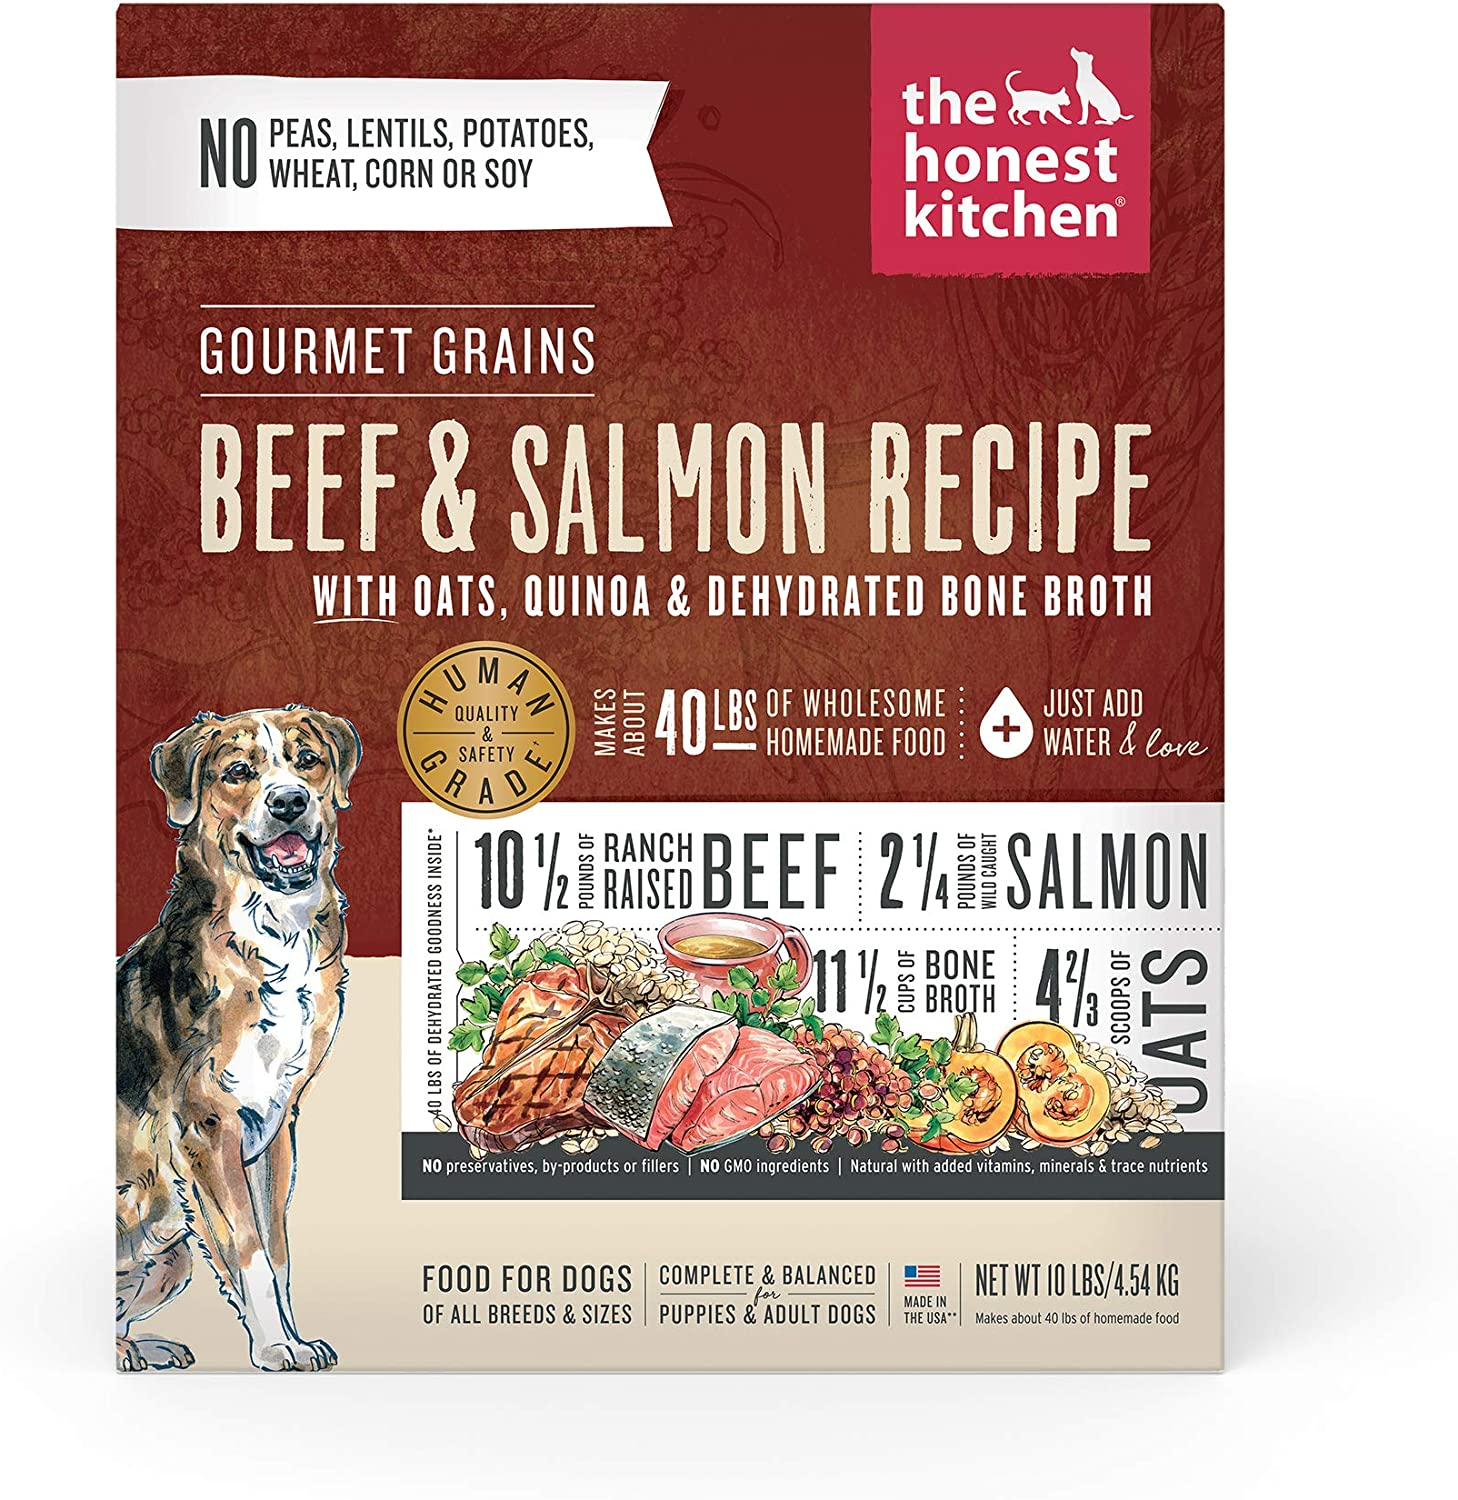 The Honest Kitchen Gourmet Grains Beef & Salmon Recipe Dehydrated Dog Food, 10 lb box